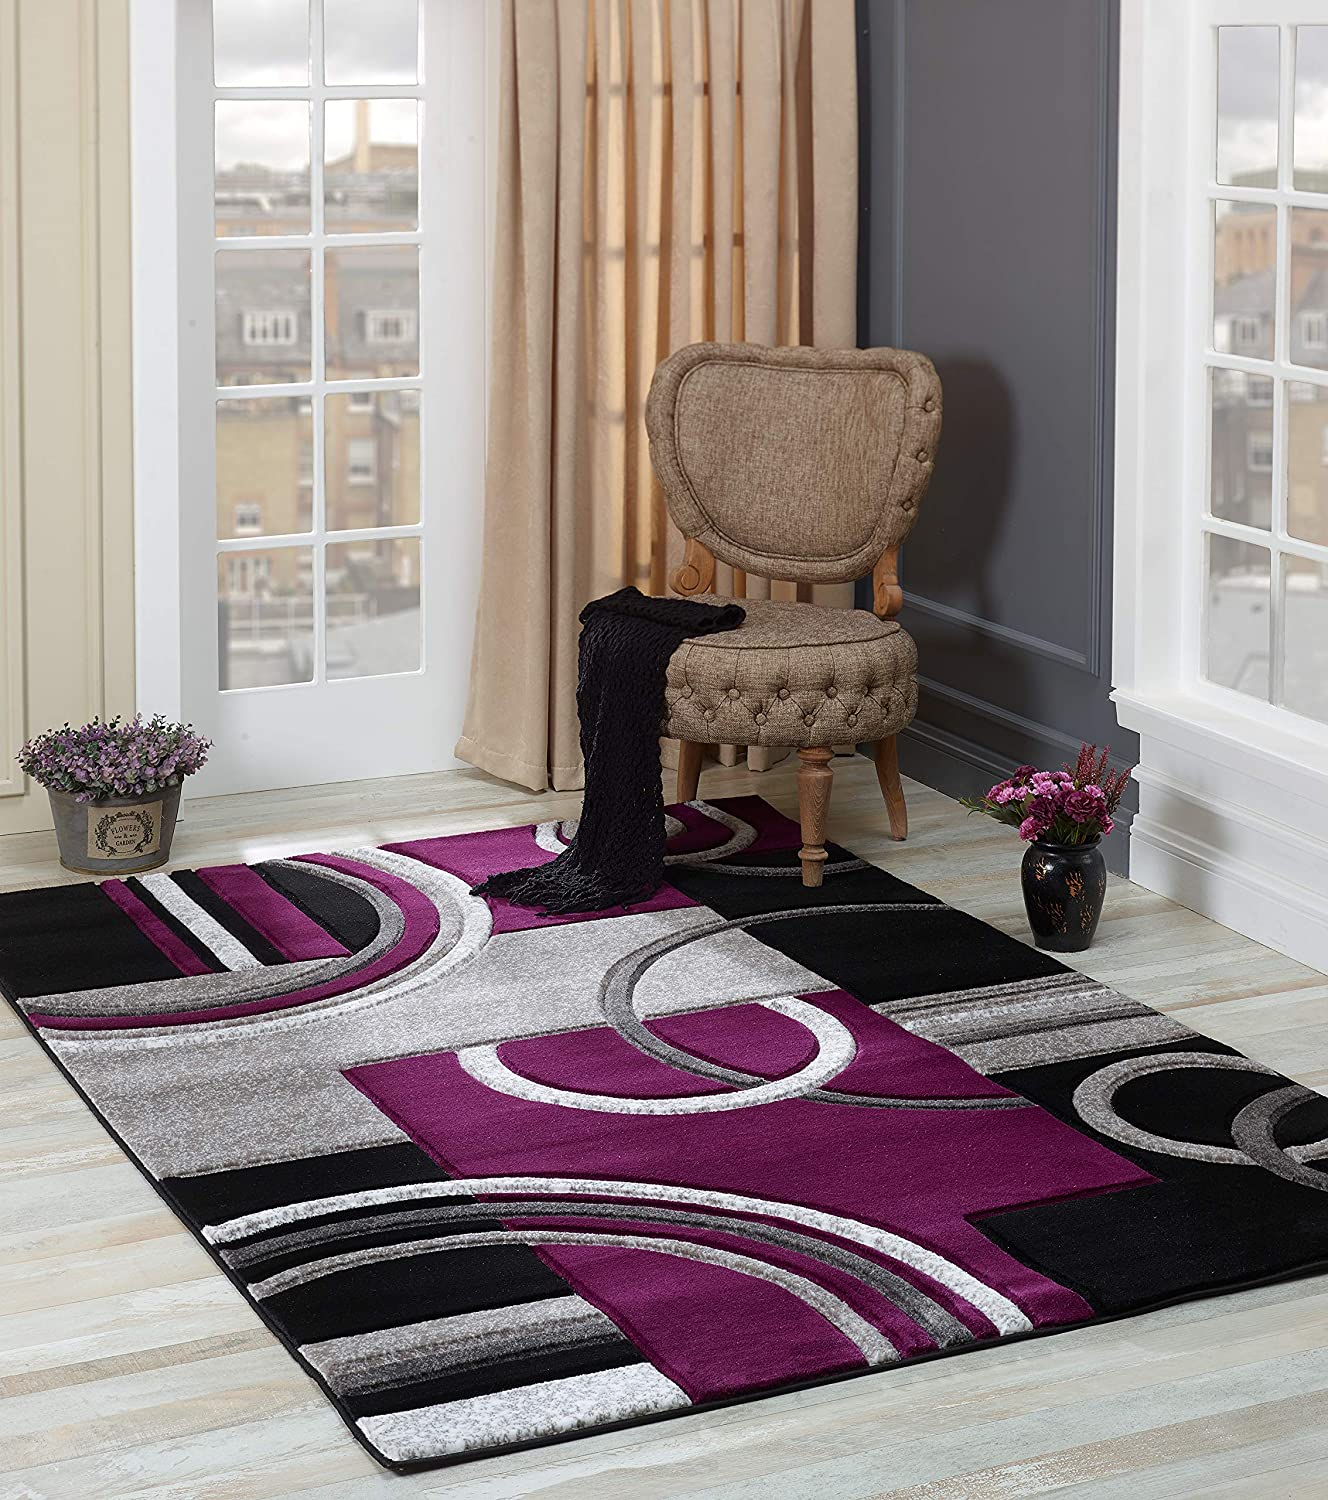 Amazon Com Glory Rugs Area Rug Modern 5x7 Purple Soft Hand Carved Contemporary Floor Carpet With Premium Fluffy Texture For Indoor Living Dining Room And Bedroom Area Home Kitchen